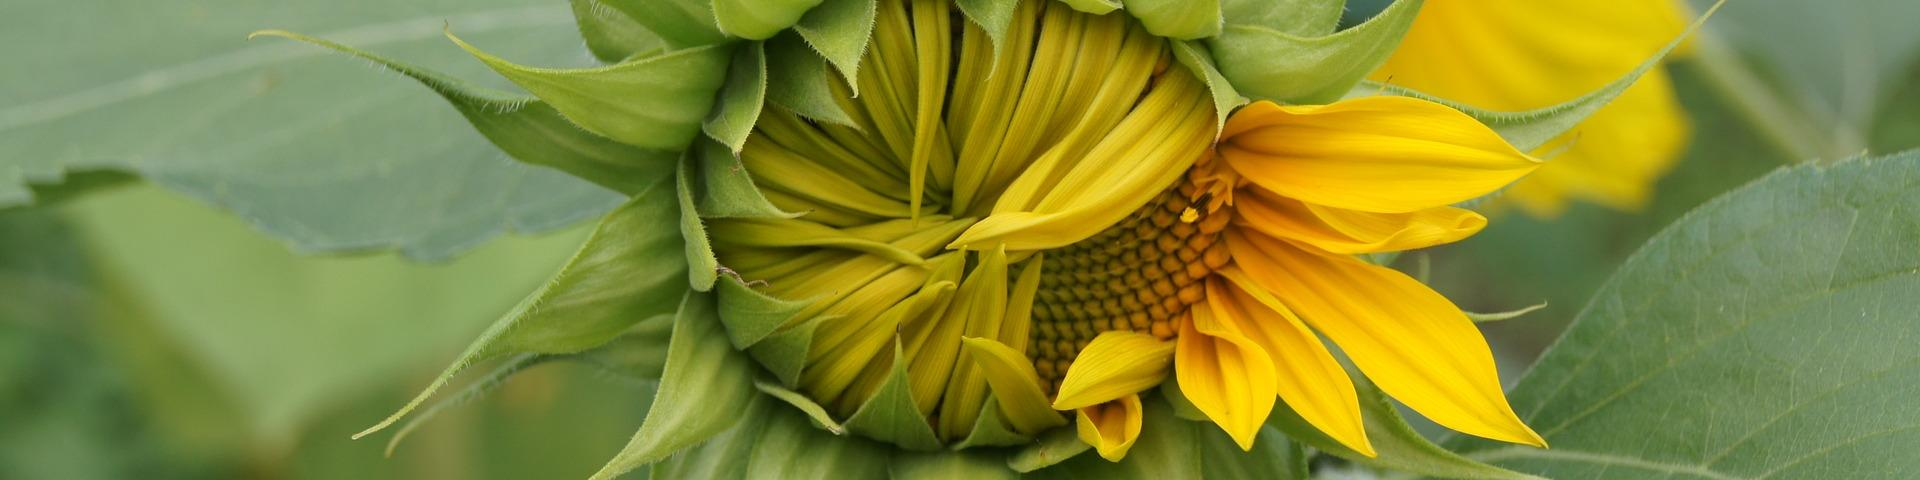 sunflower-1942825_1920 (1) (c) pixabay